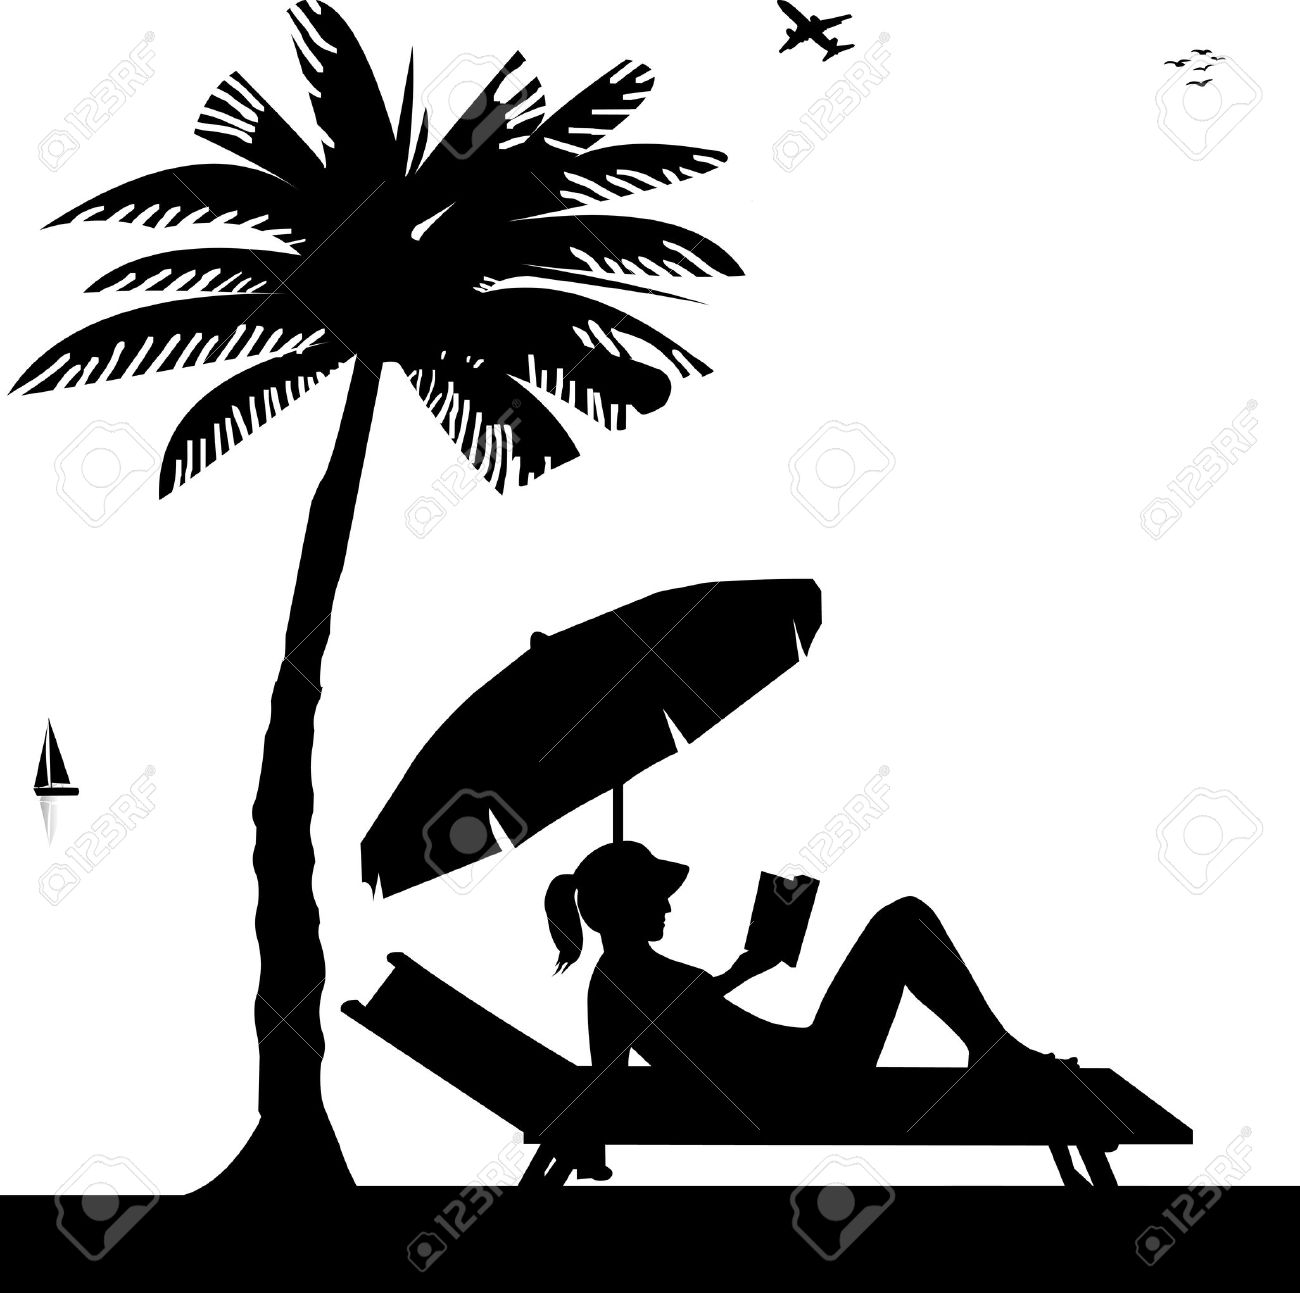 Silhouette of girl sunbathing and reading a book on the beach next to the palms, one in the series of similar images Stock Vector - 14114273